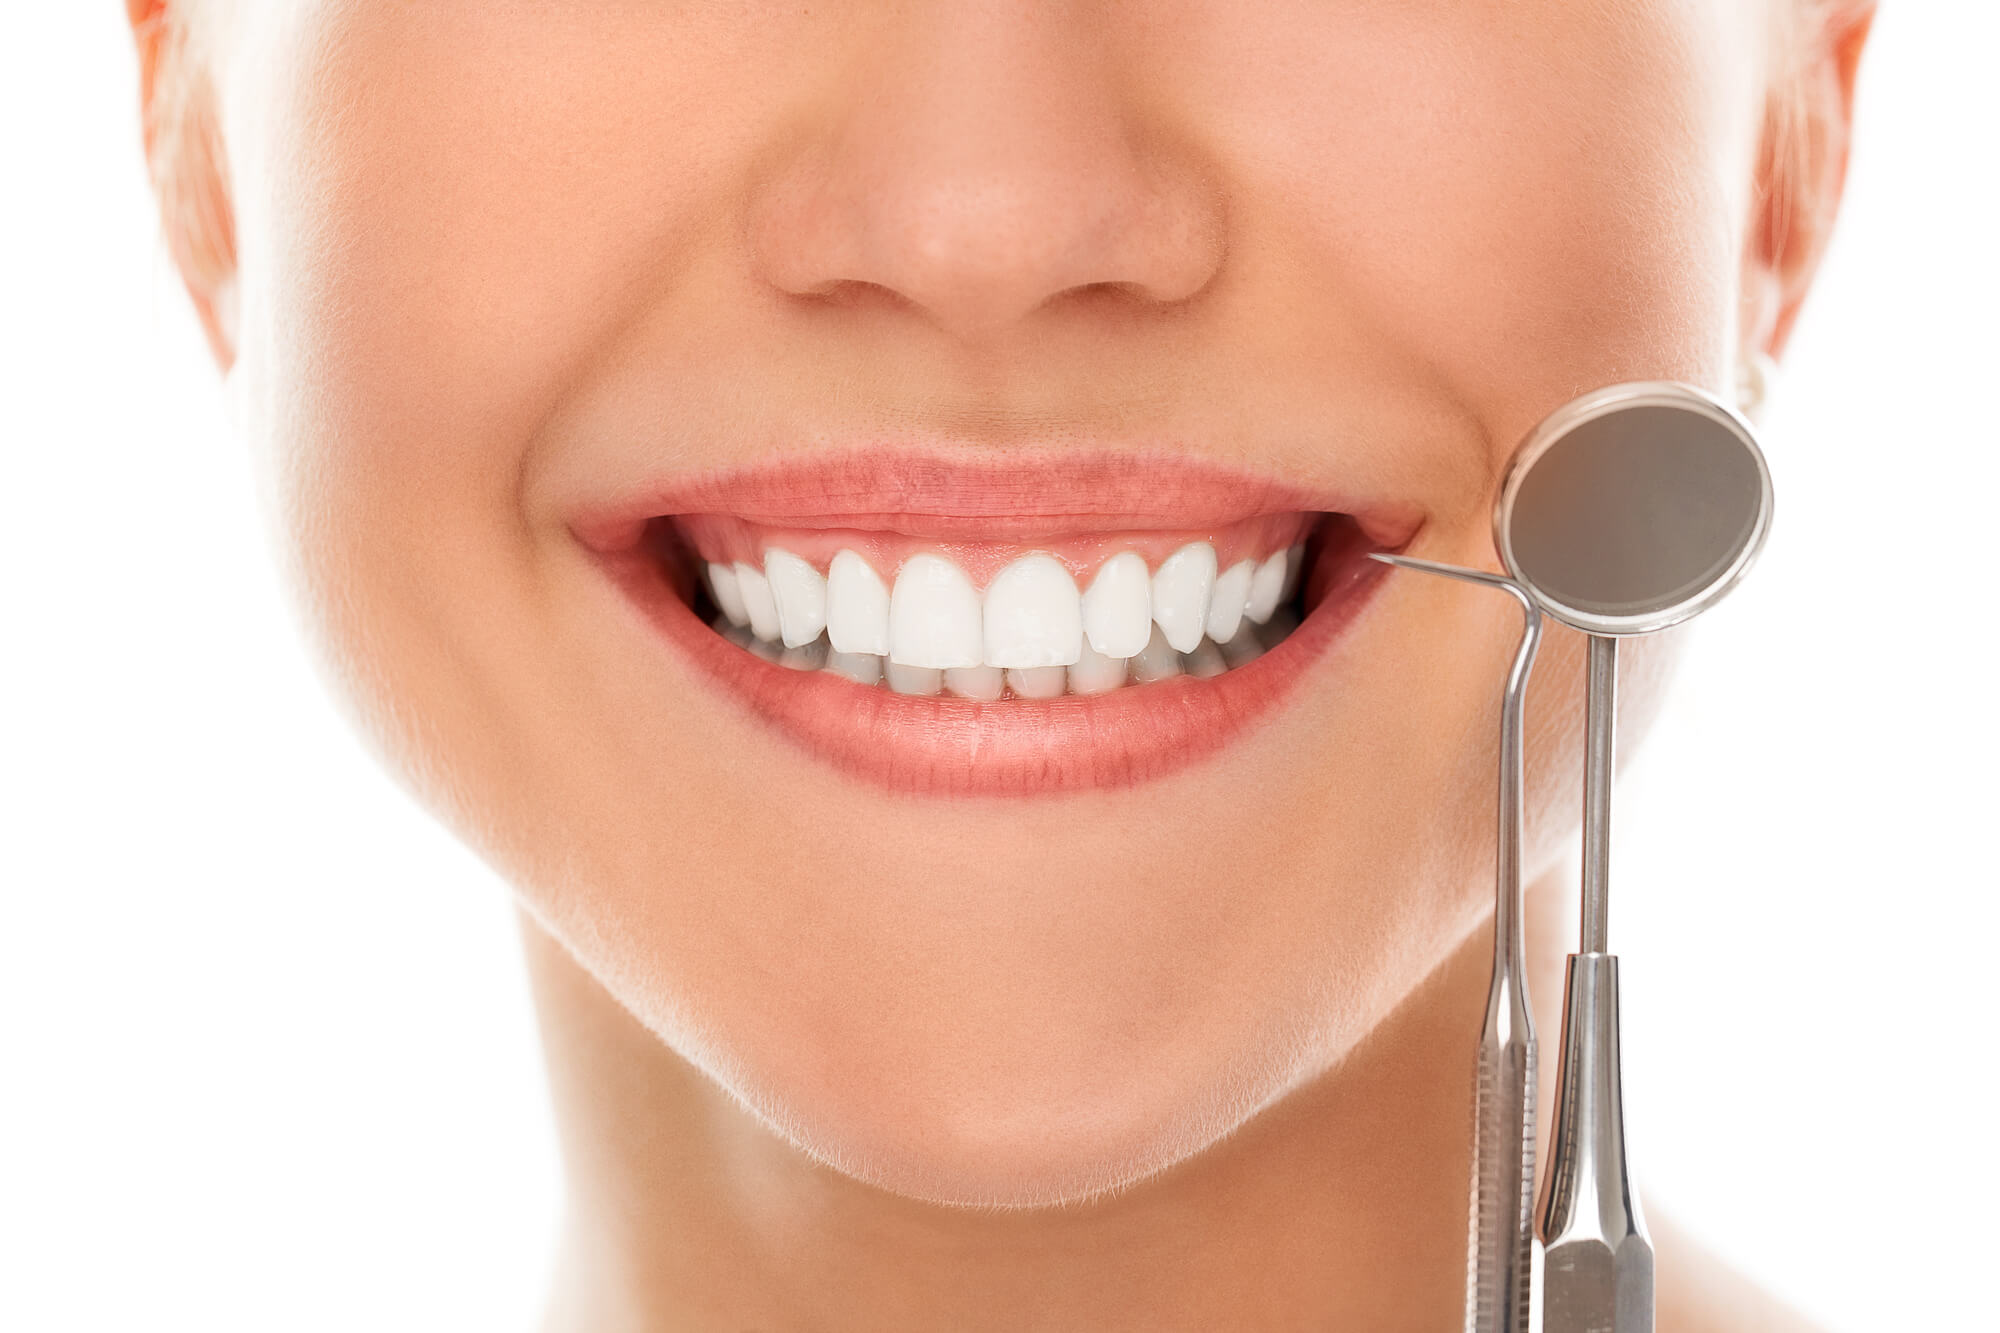 who offers oral sedation cary nc?